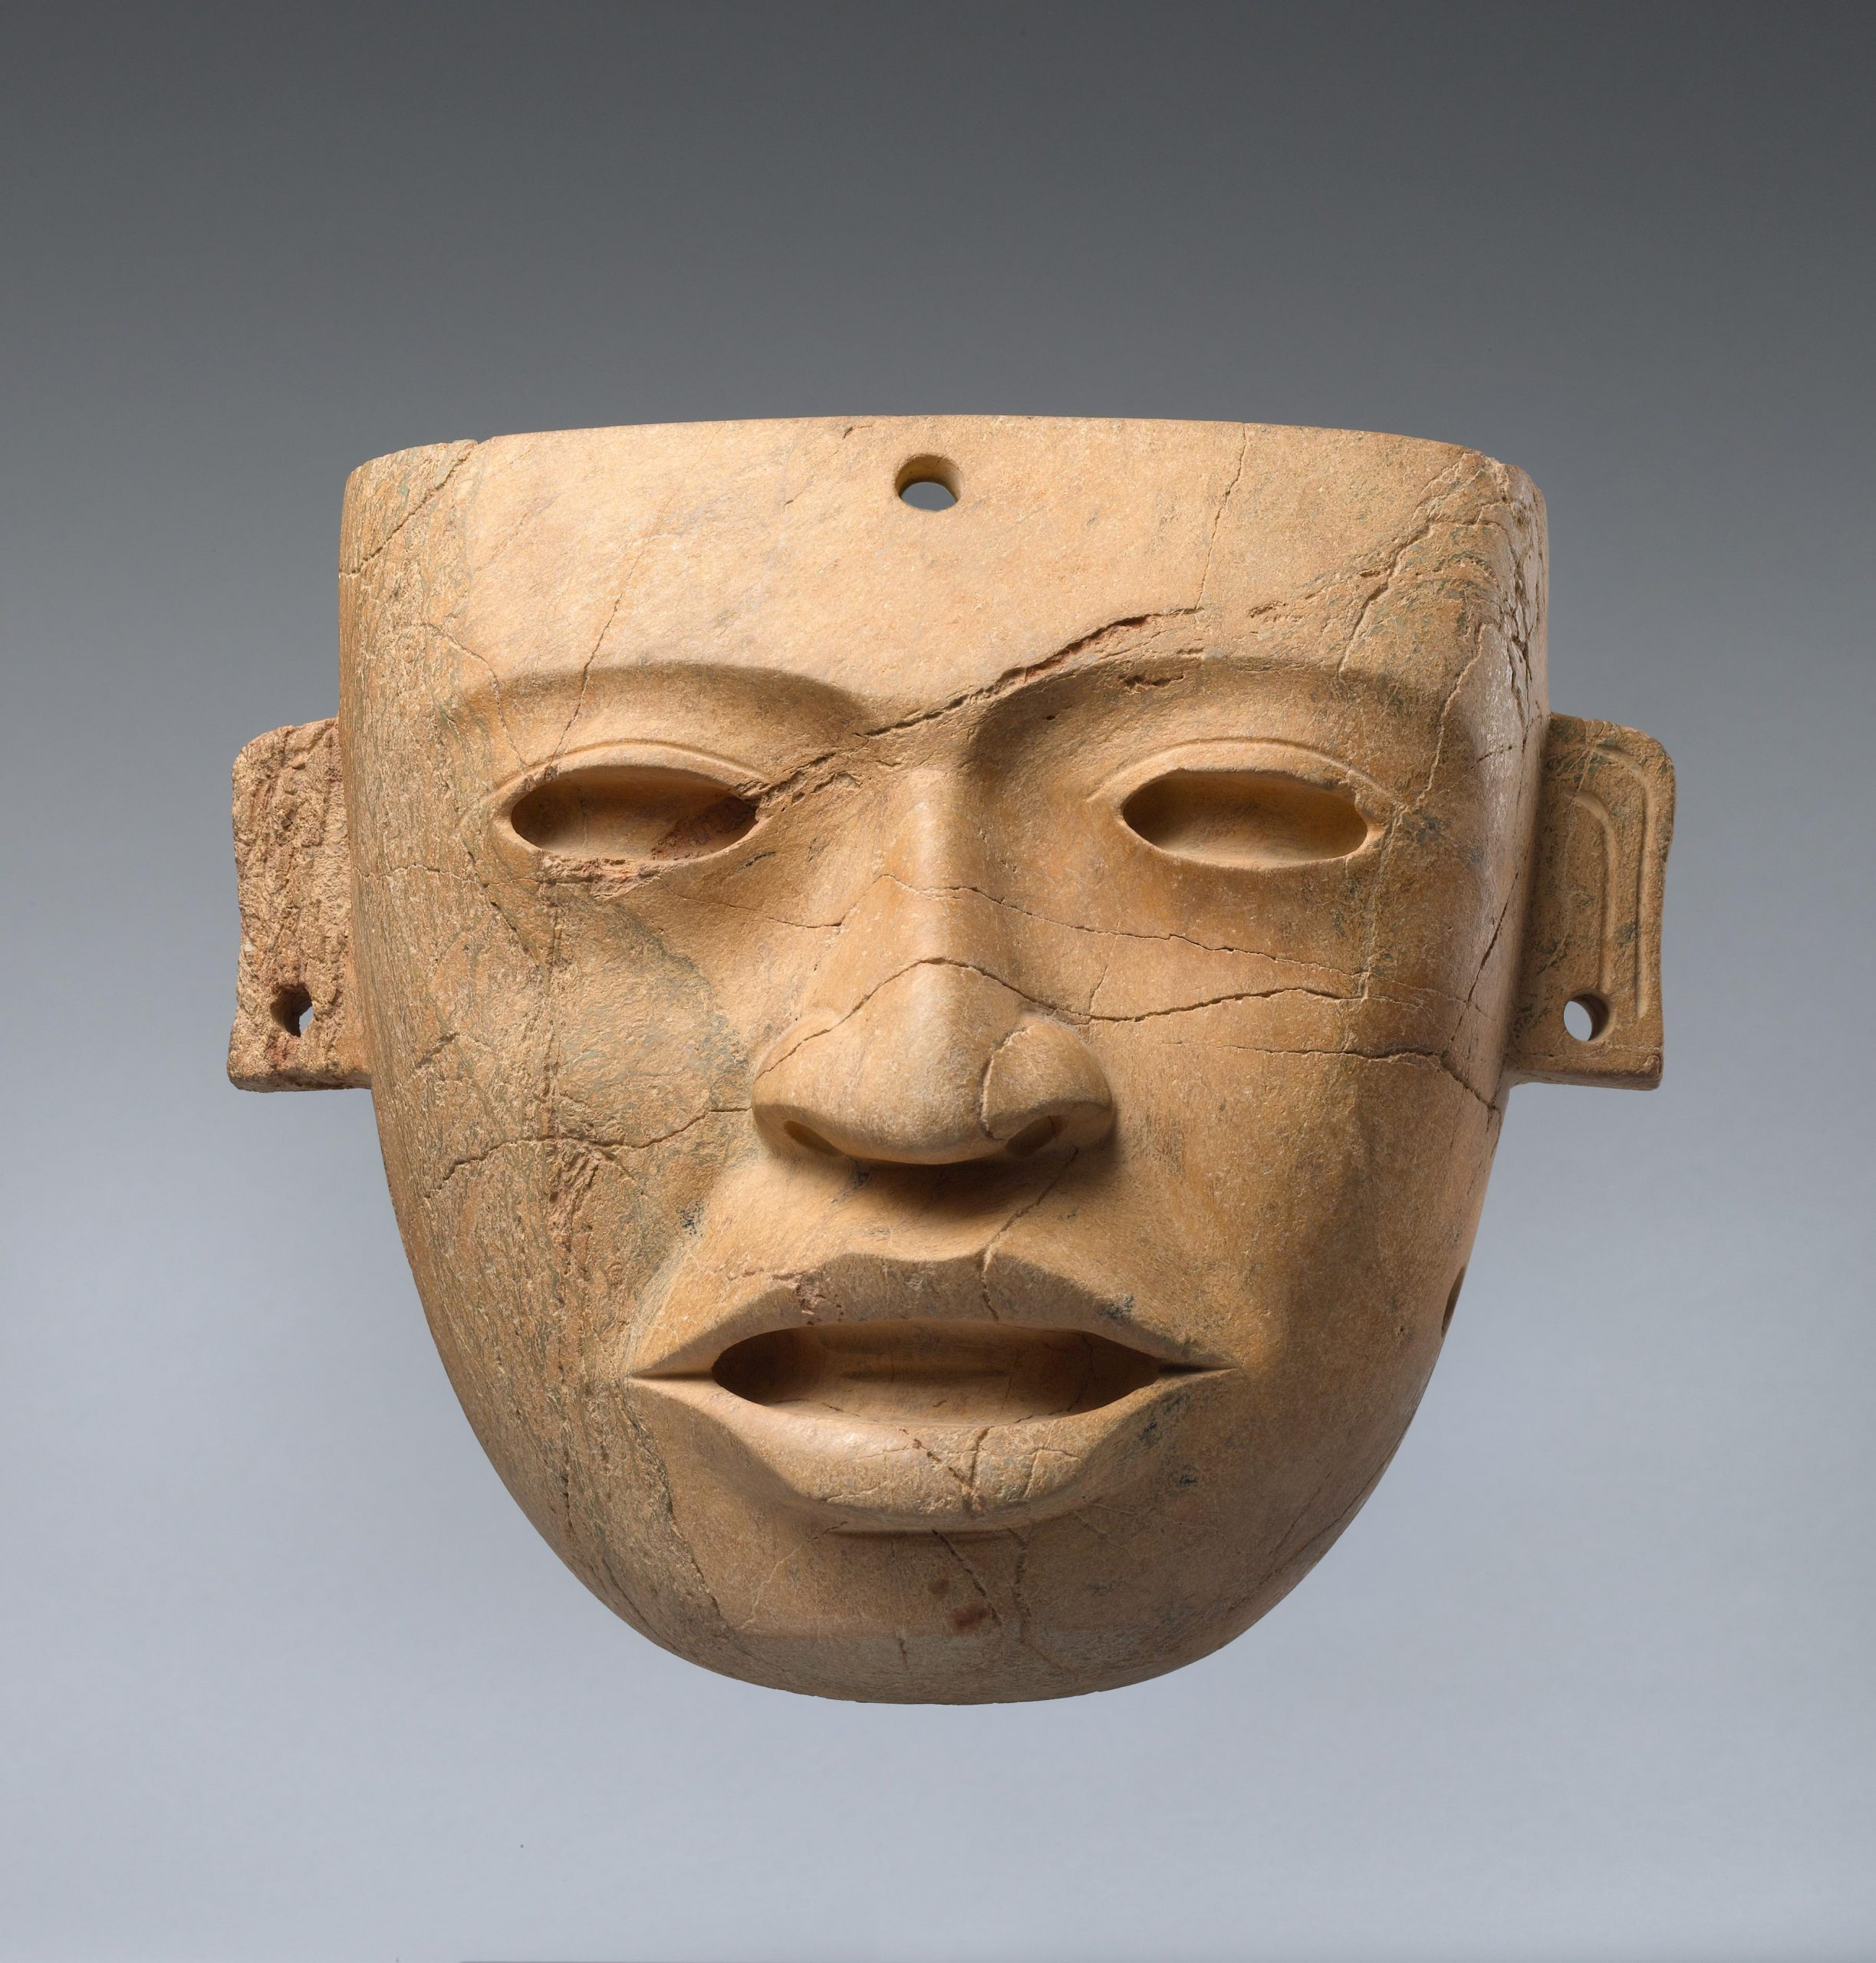 Light brown realistic face mask with hollowed eyes, open mouth, and pierced ears.